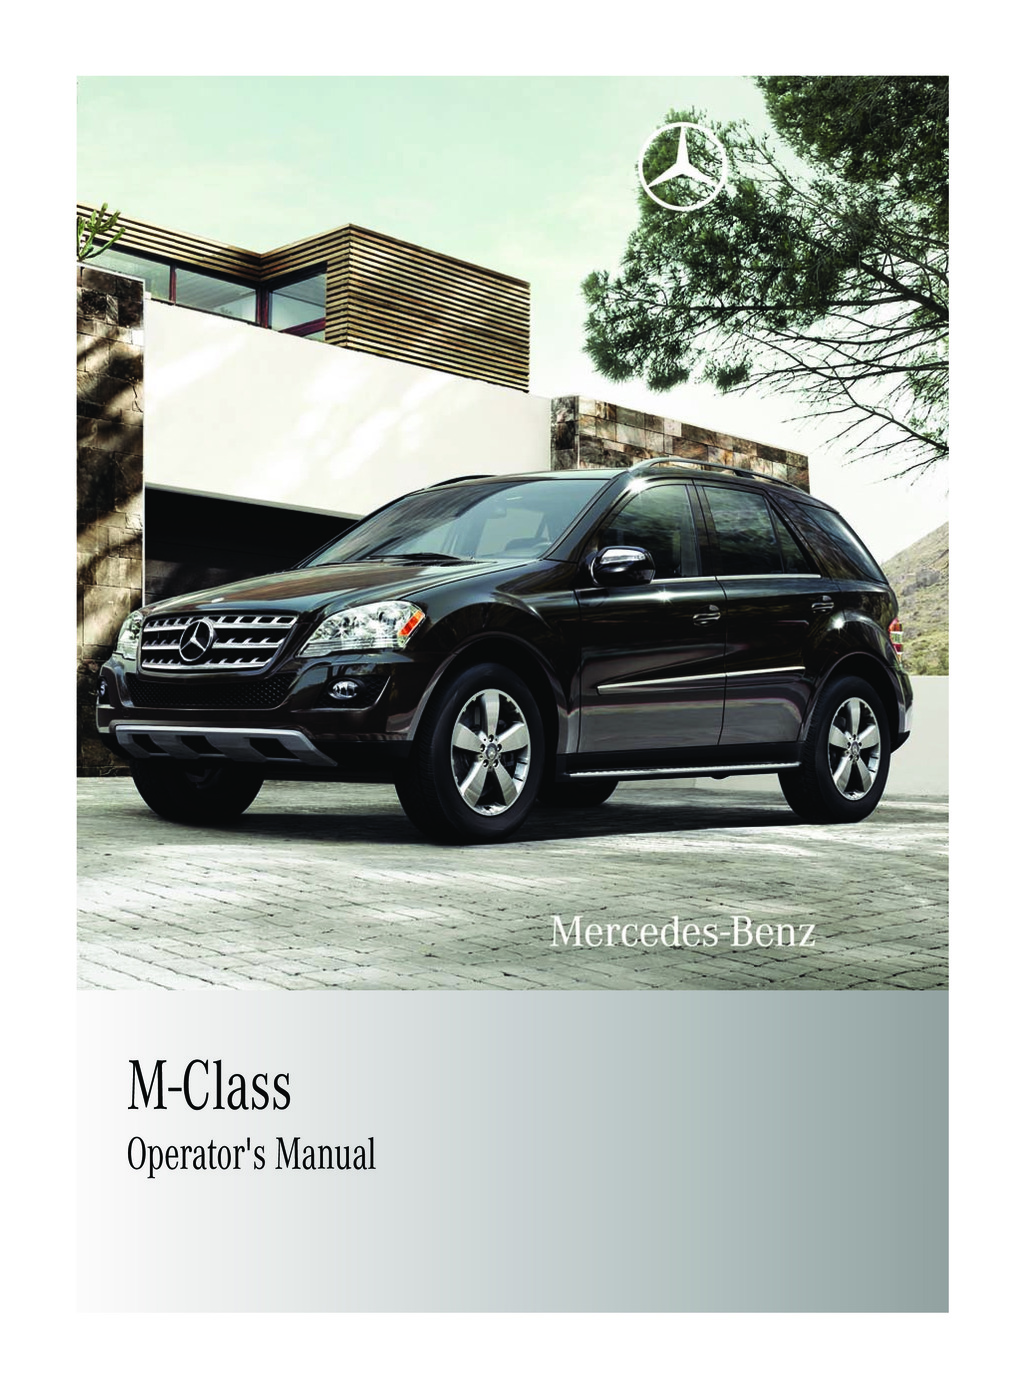 2011 Mercedes-Benz M Class owners manual